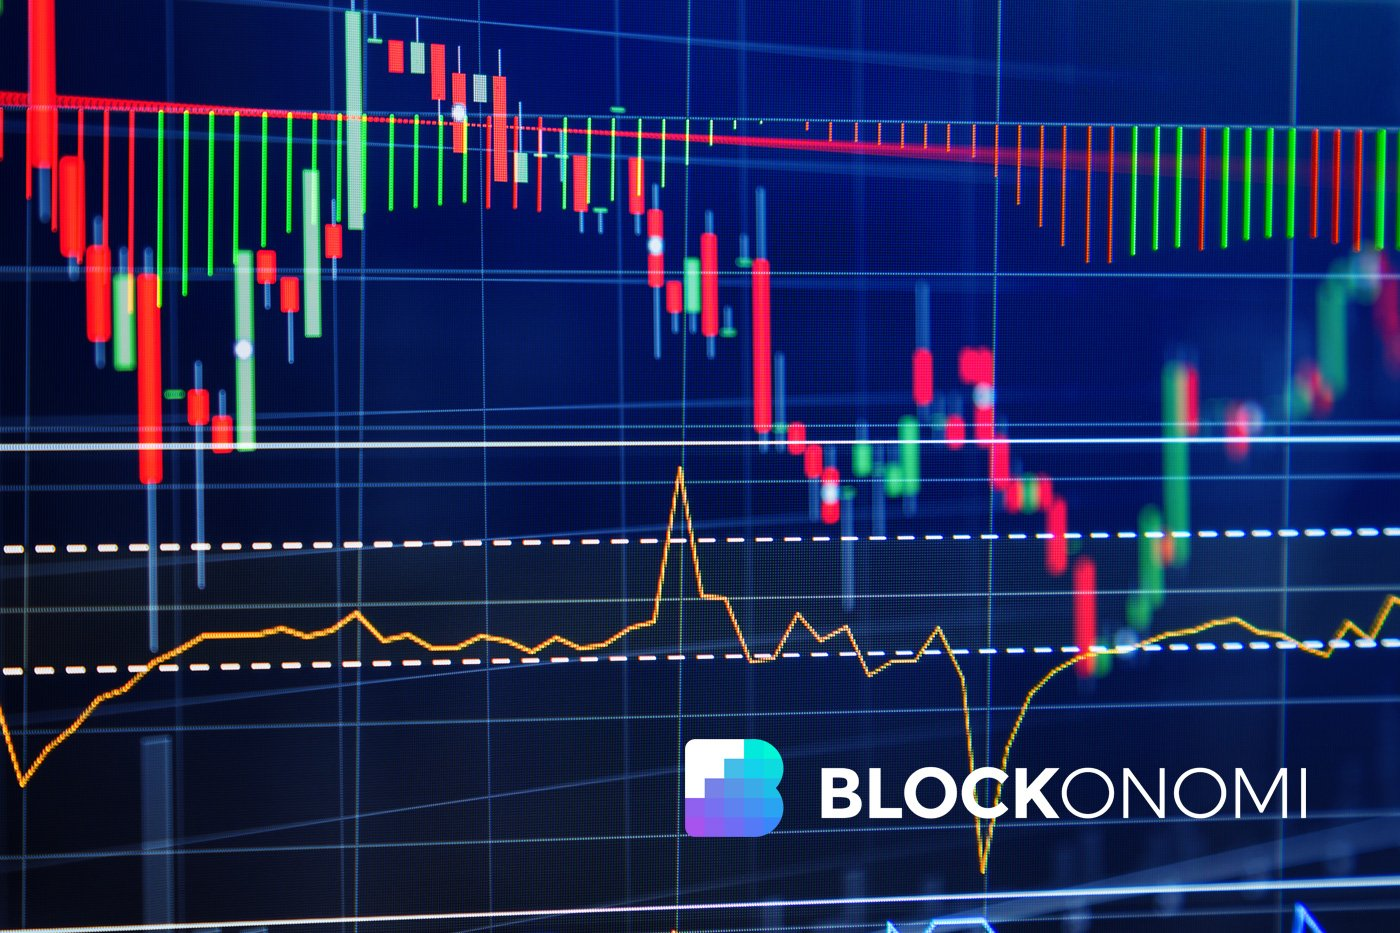 Crypto Price Watch [19659003] As you can see this is the result of an inability to break the resistance level around $ 204 billion, so the assessment returned five days ago. </p> <p><img class=